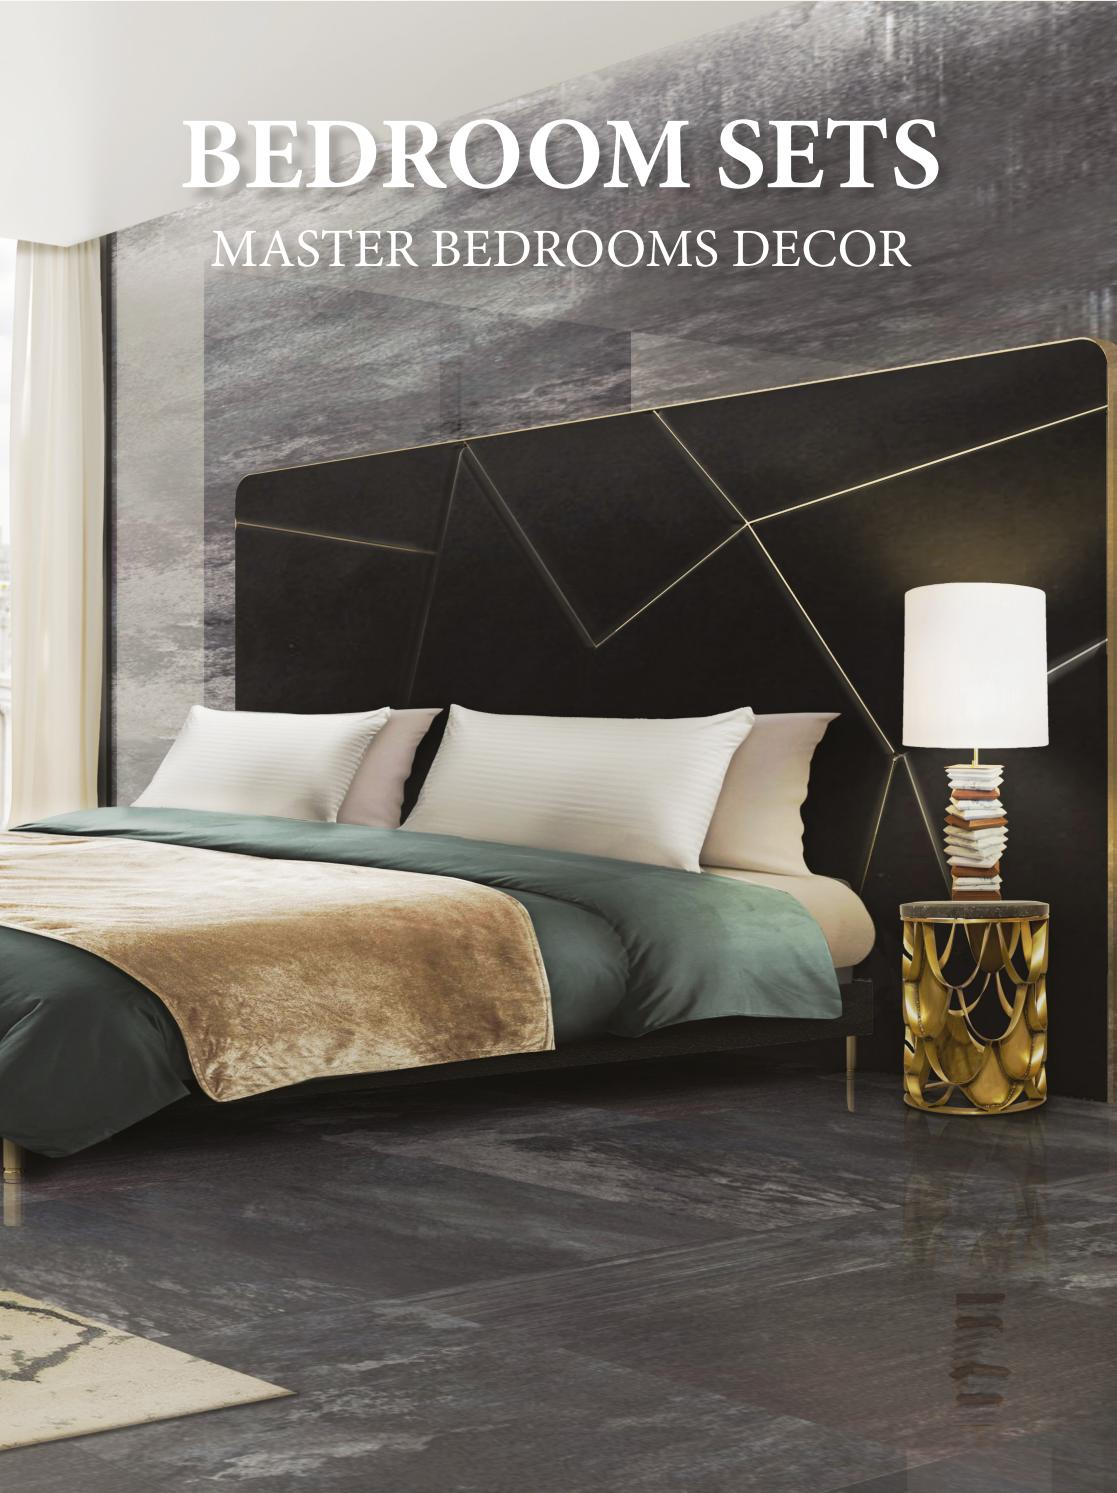 Bedrooms Sets Master Bedrooms Decor By Home Living Magazines  # Muebles Riflessi